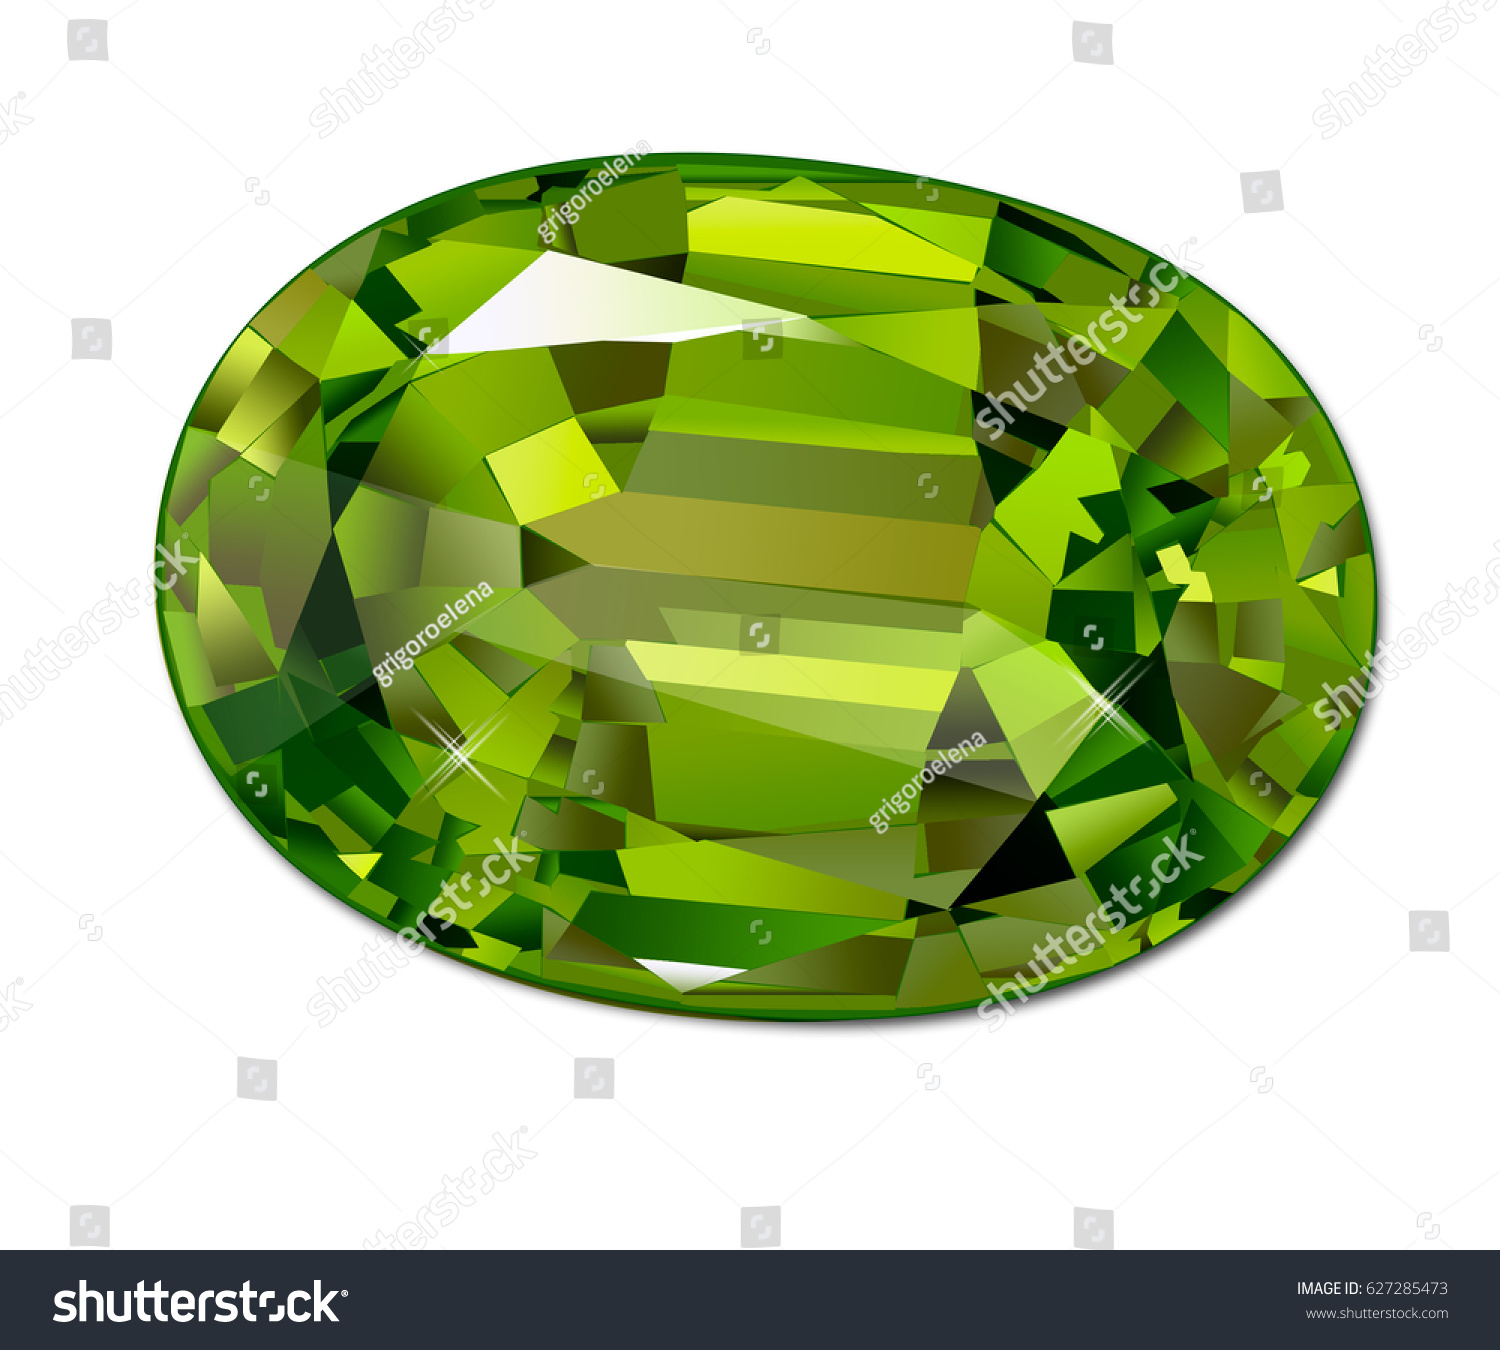 lot precious id gemstone ct online certified wholesale lots stone buy emerald green huge gemstones resellers